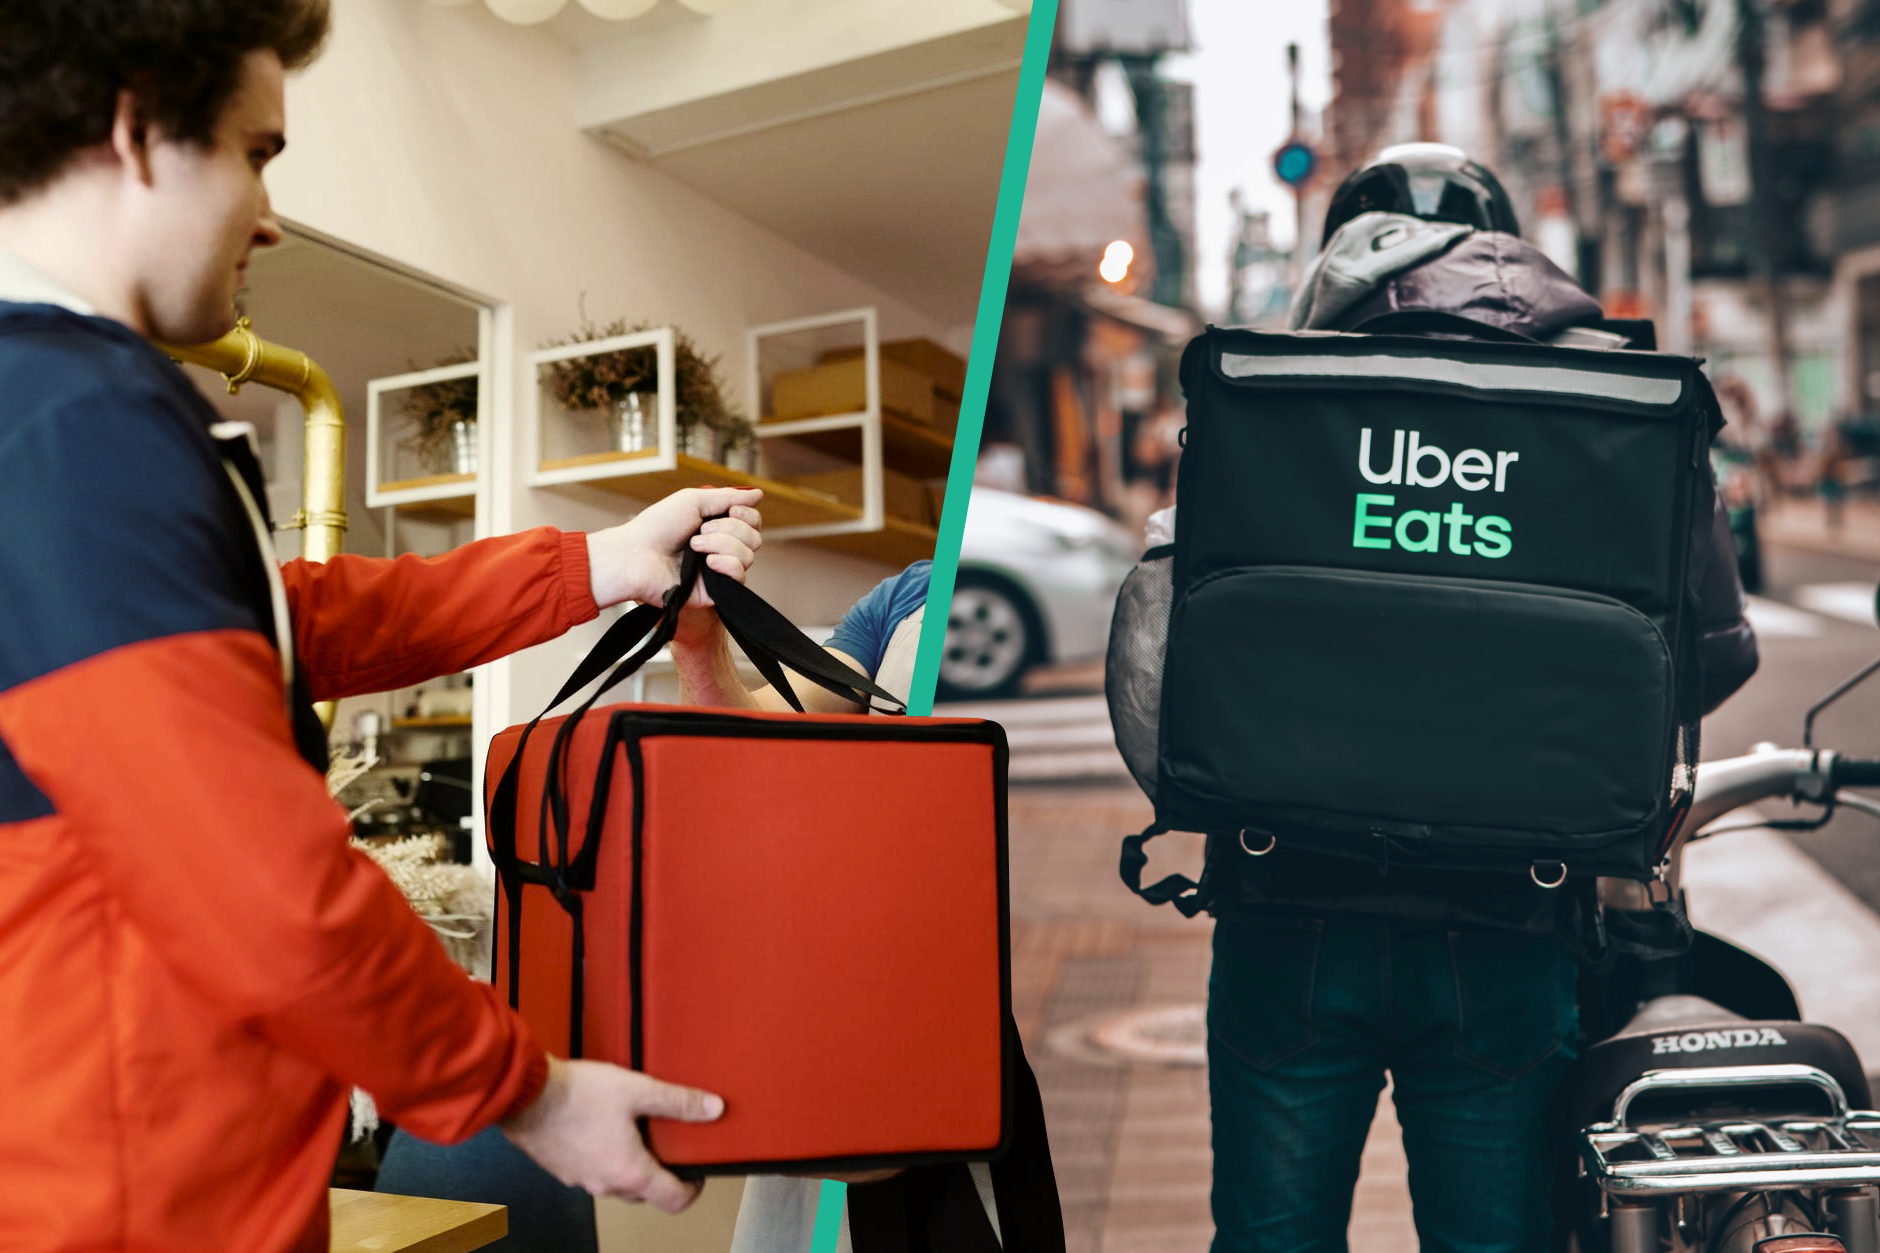 i-have-my-own-delivery-drivers-and-ubereats-drivers-what-should-i-do